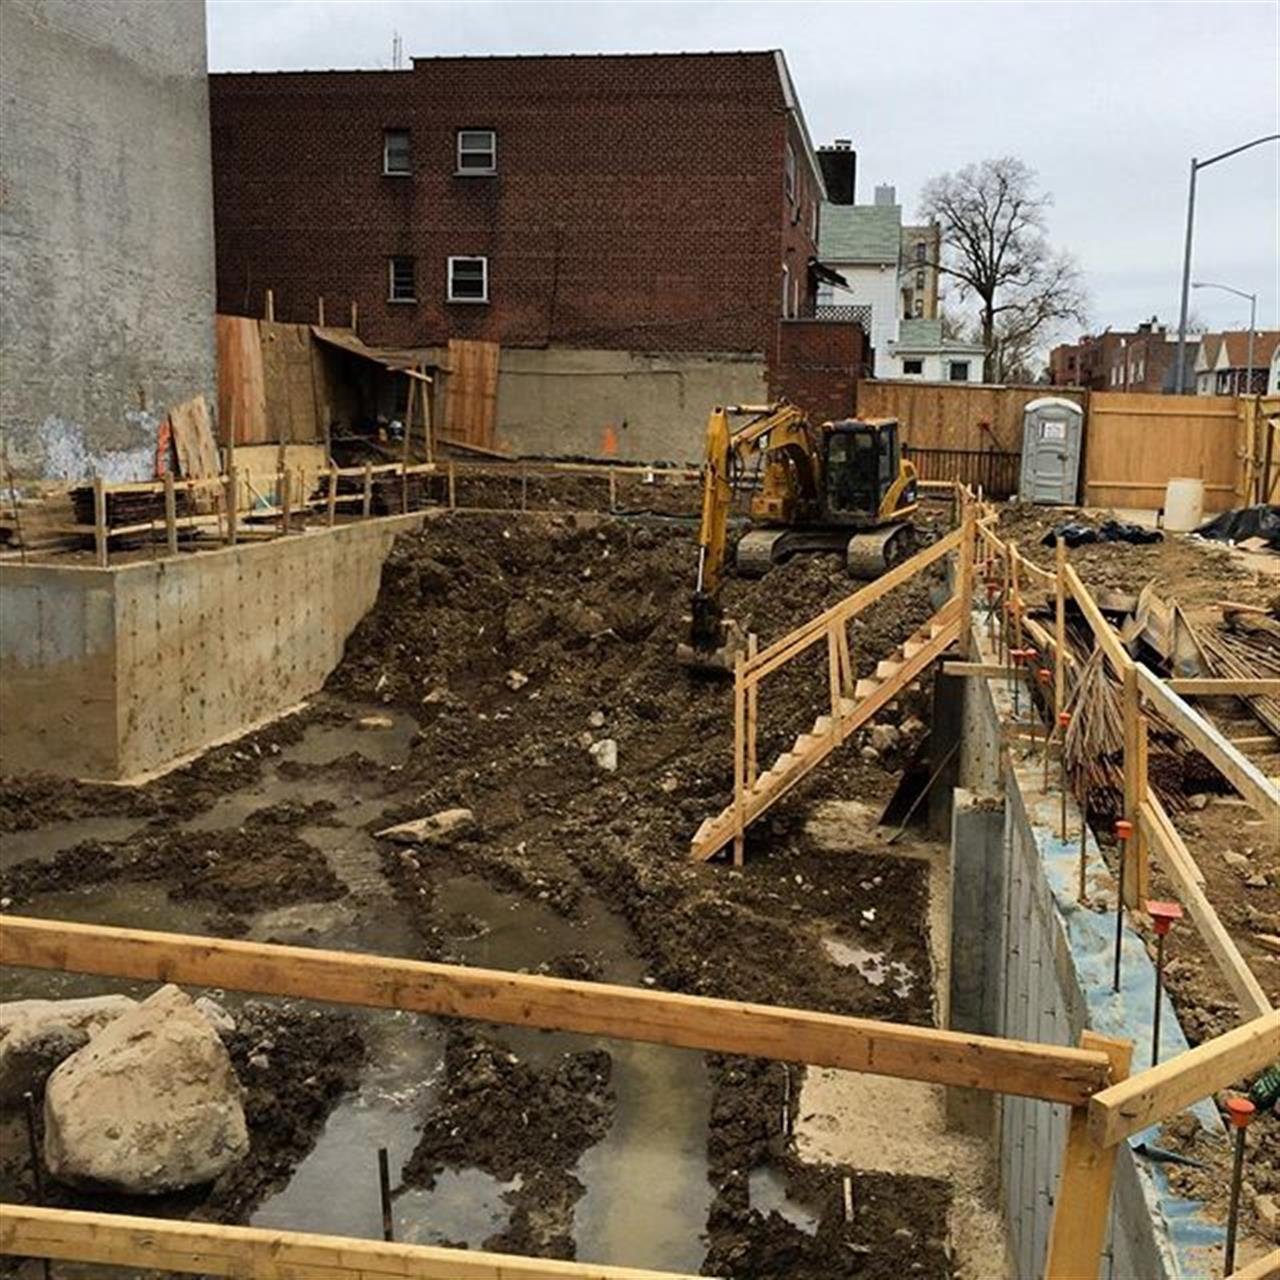 Monday's usually mean it's time to get back to #work and in #pelhambay that's the case for #laborers in this #construction site  #OSCARRIGAMONTY #OR #investinthebronx  #RealEstate #trulia #realty #realtor #zillow #homes #property #bronx #BronxNY #newyorkcity #NYC #thebronxdoesitbest #eyesonthebronx #Bronxrealestate  #sell #buy #realestate #pantigagroup #leadingre #TheBronxIs #minutesawayfromthecity #minutesawayfromwestchester Link in bio